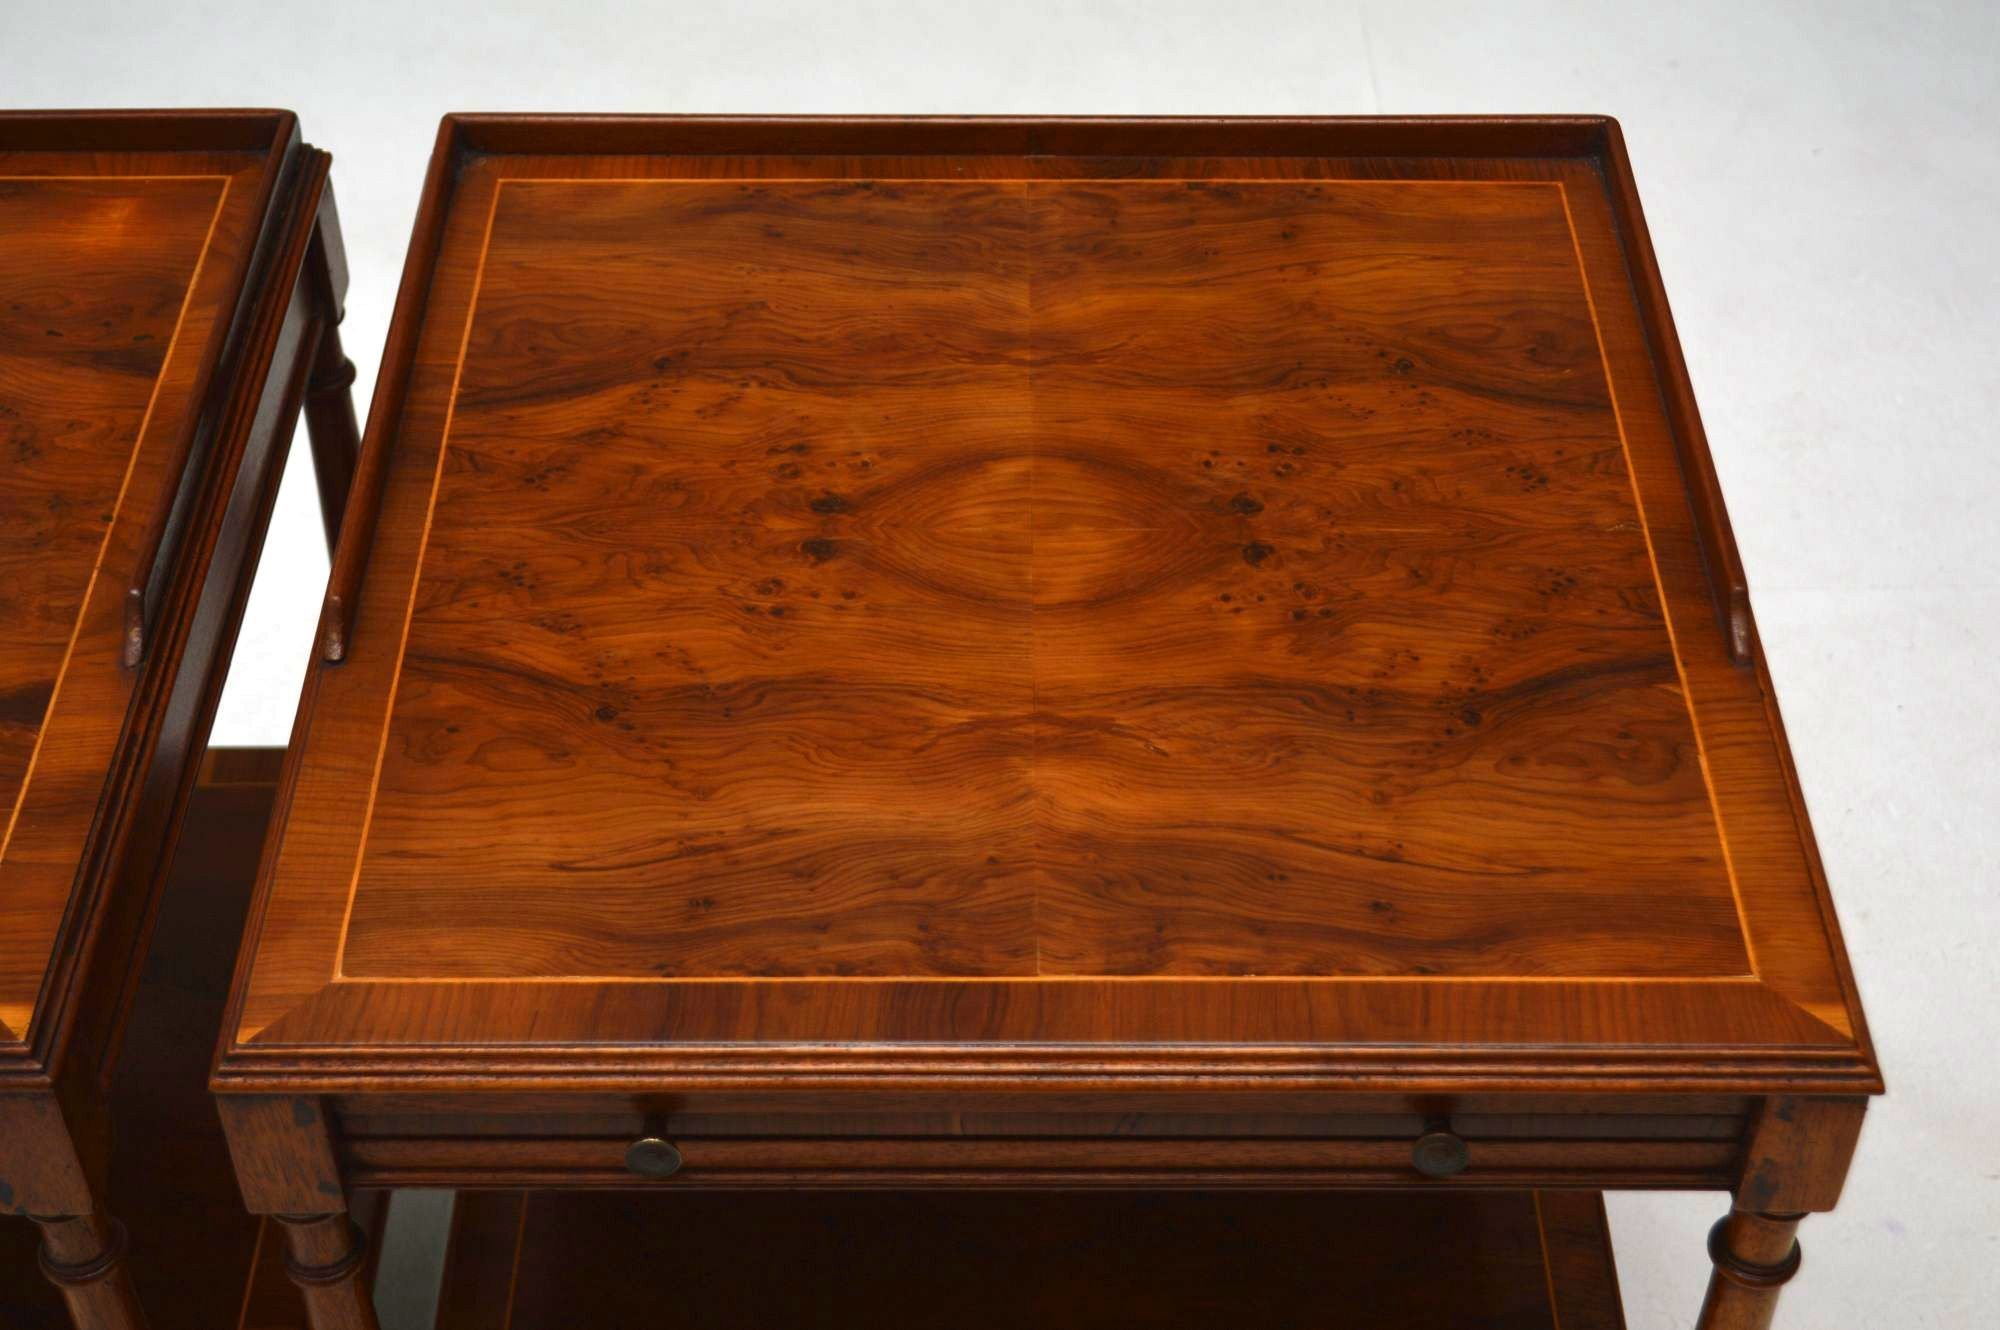 Best Pair Of Antique Yew Wood Side Or Lamp Tables Marylebone Antiques – Sellers Of 19Th Century With Pictures